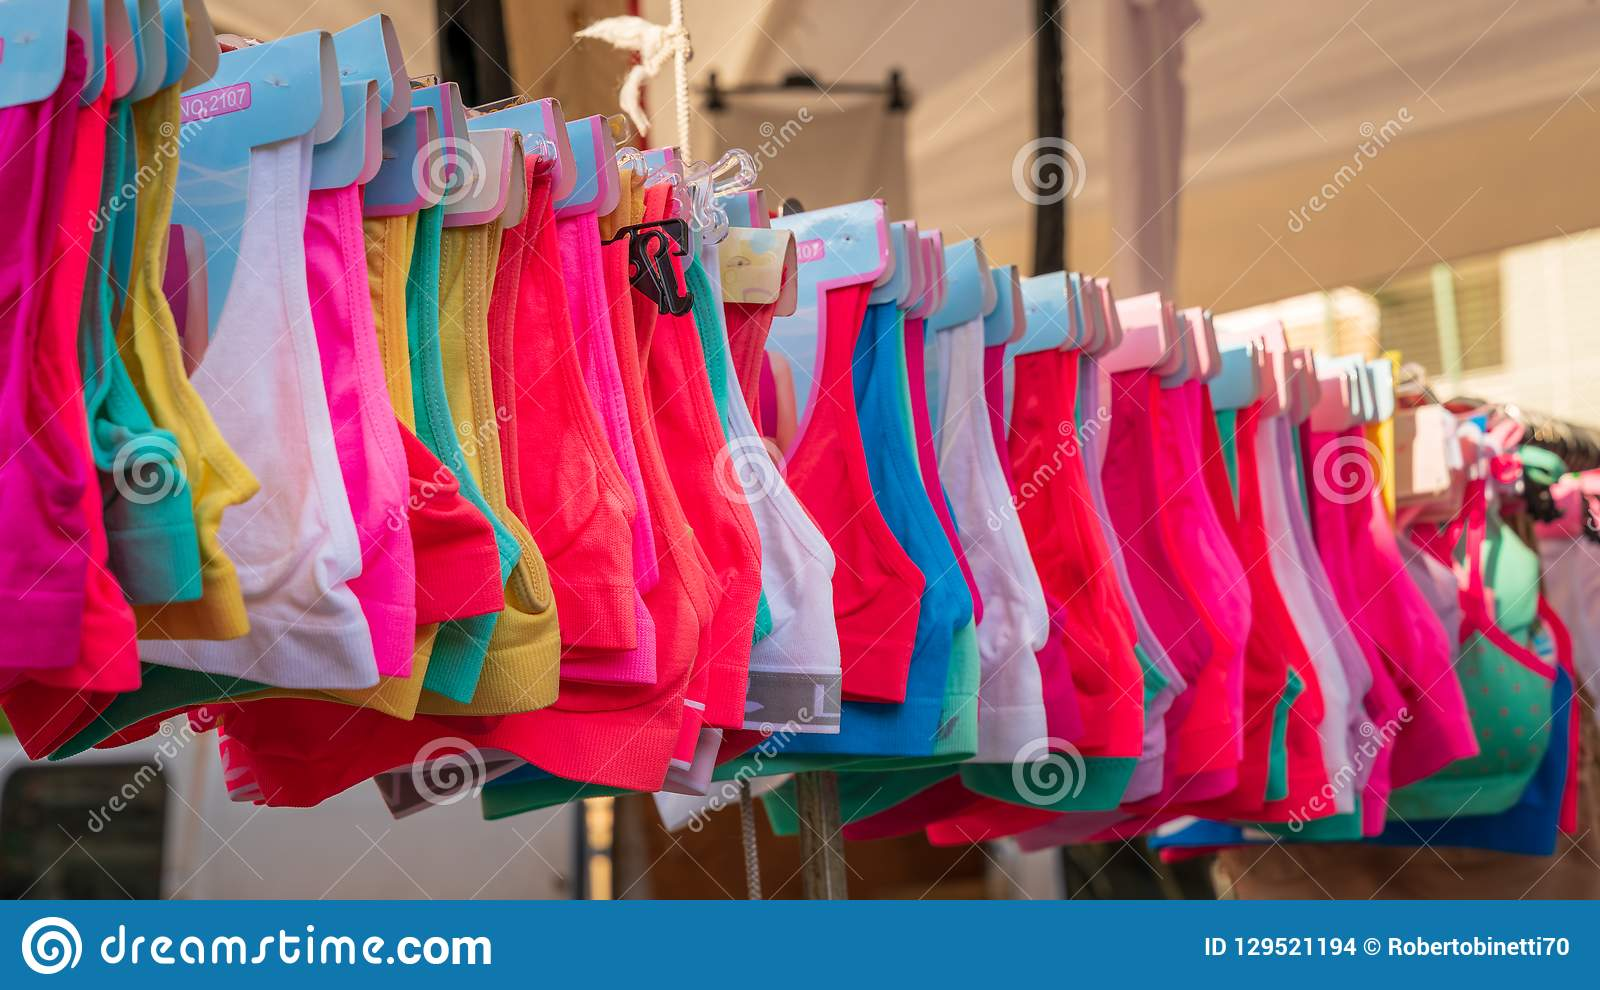 Exhibition Stand Prices : Exhibition stand and sale of sports bras stock photo image of